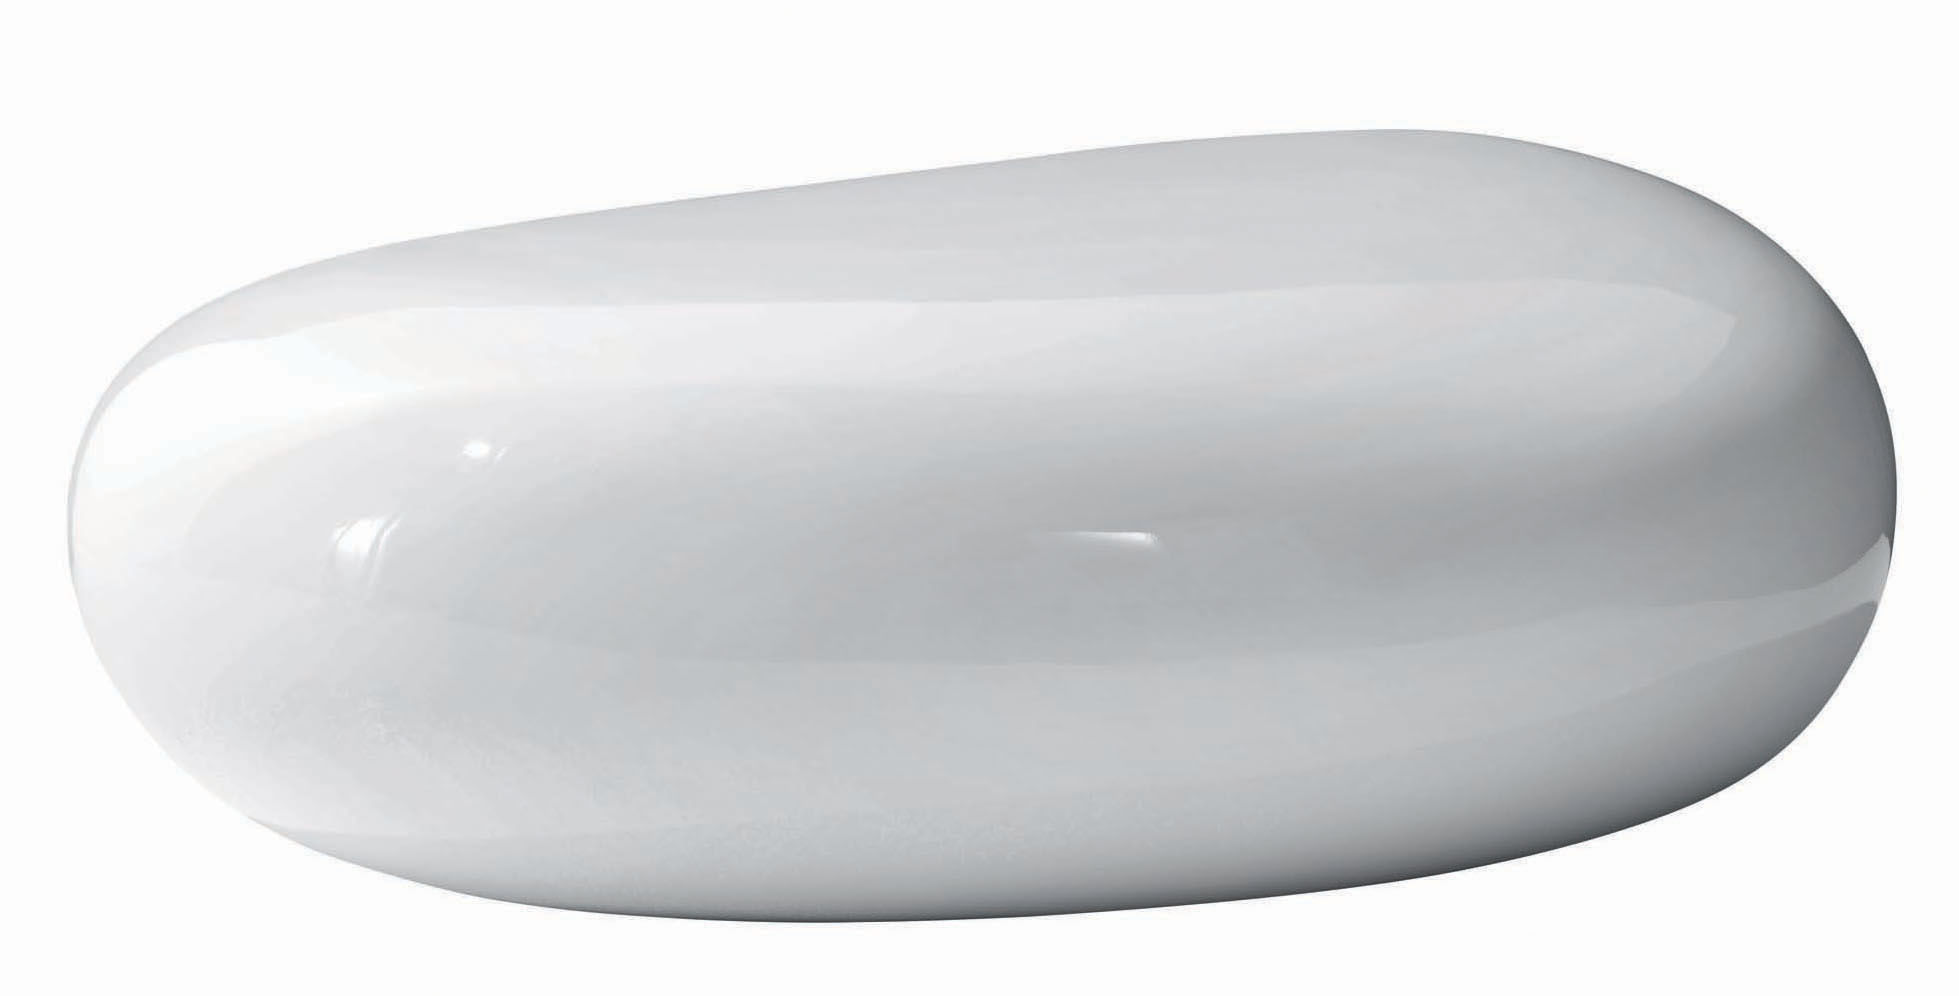 Koishi pouf pouf white by driade made in design uk for Design couchtisch bowl highgloss weiss 90cm